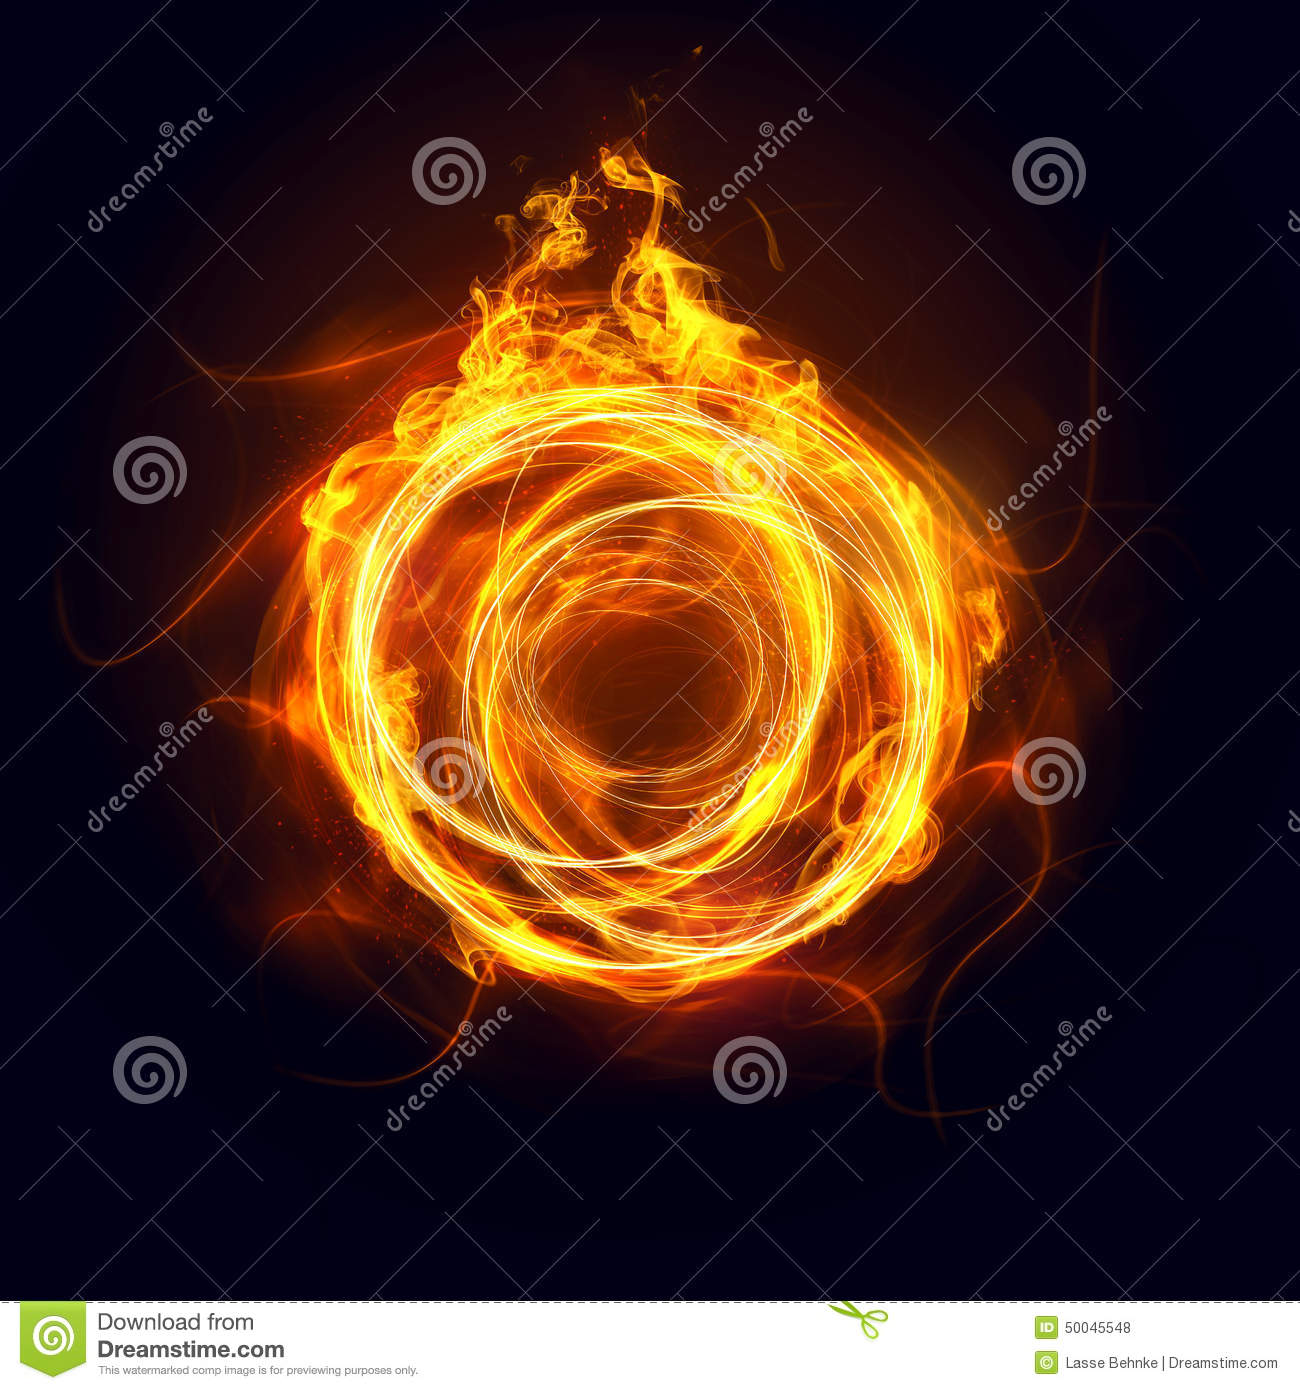 ring of fire stock photo image of element design shine 50045548